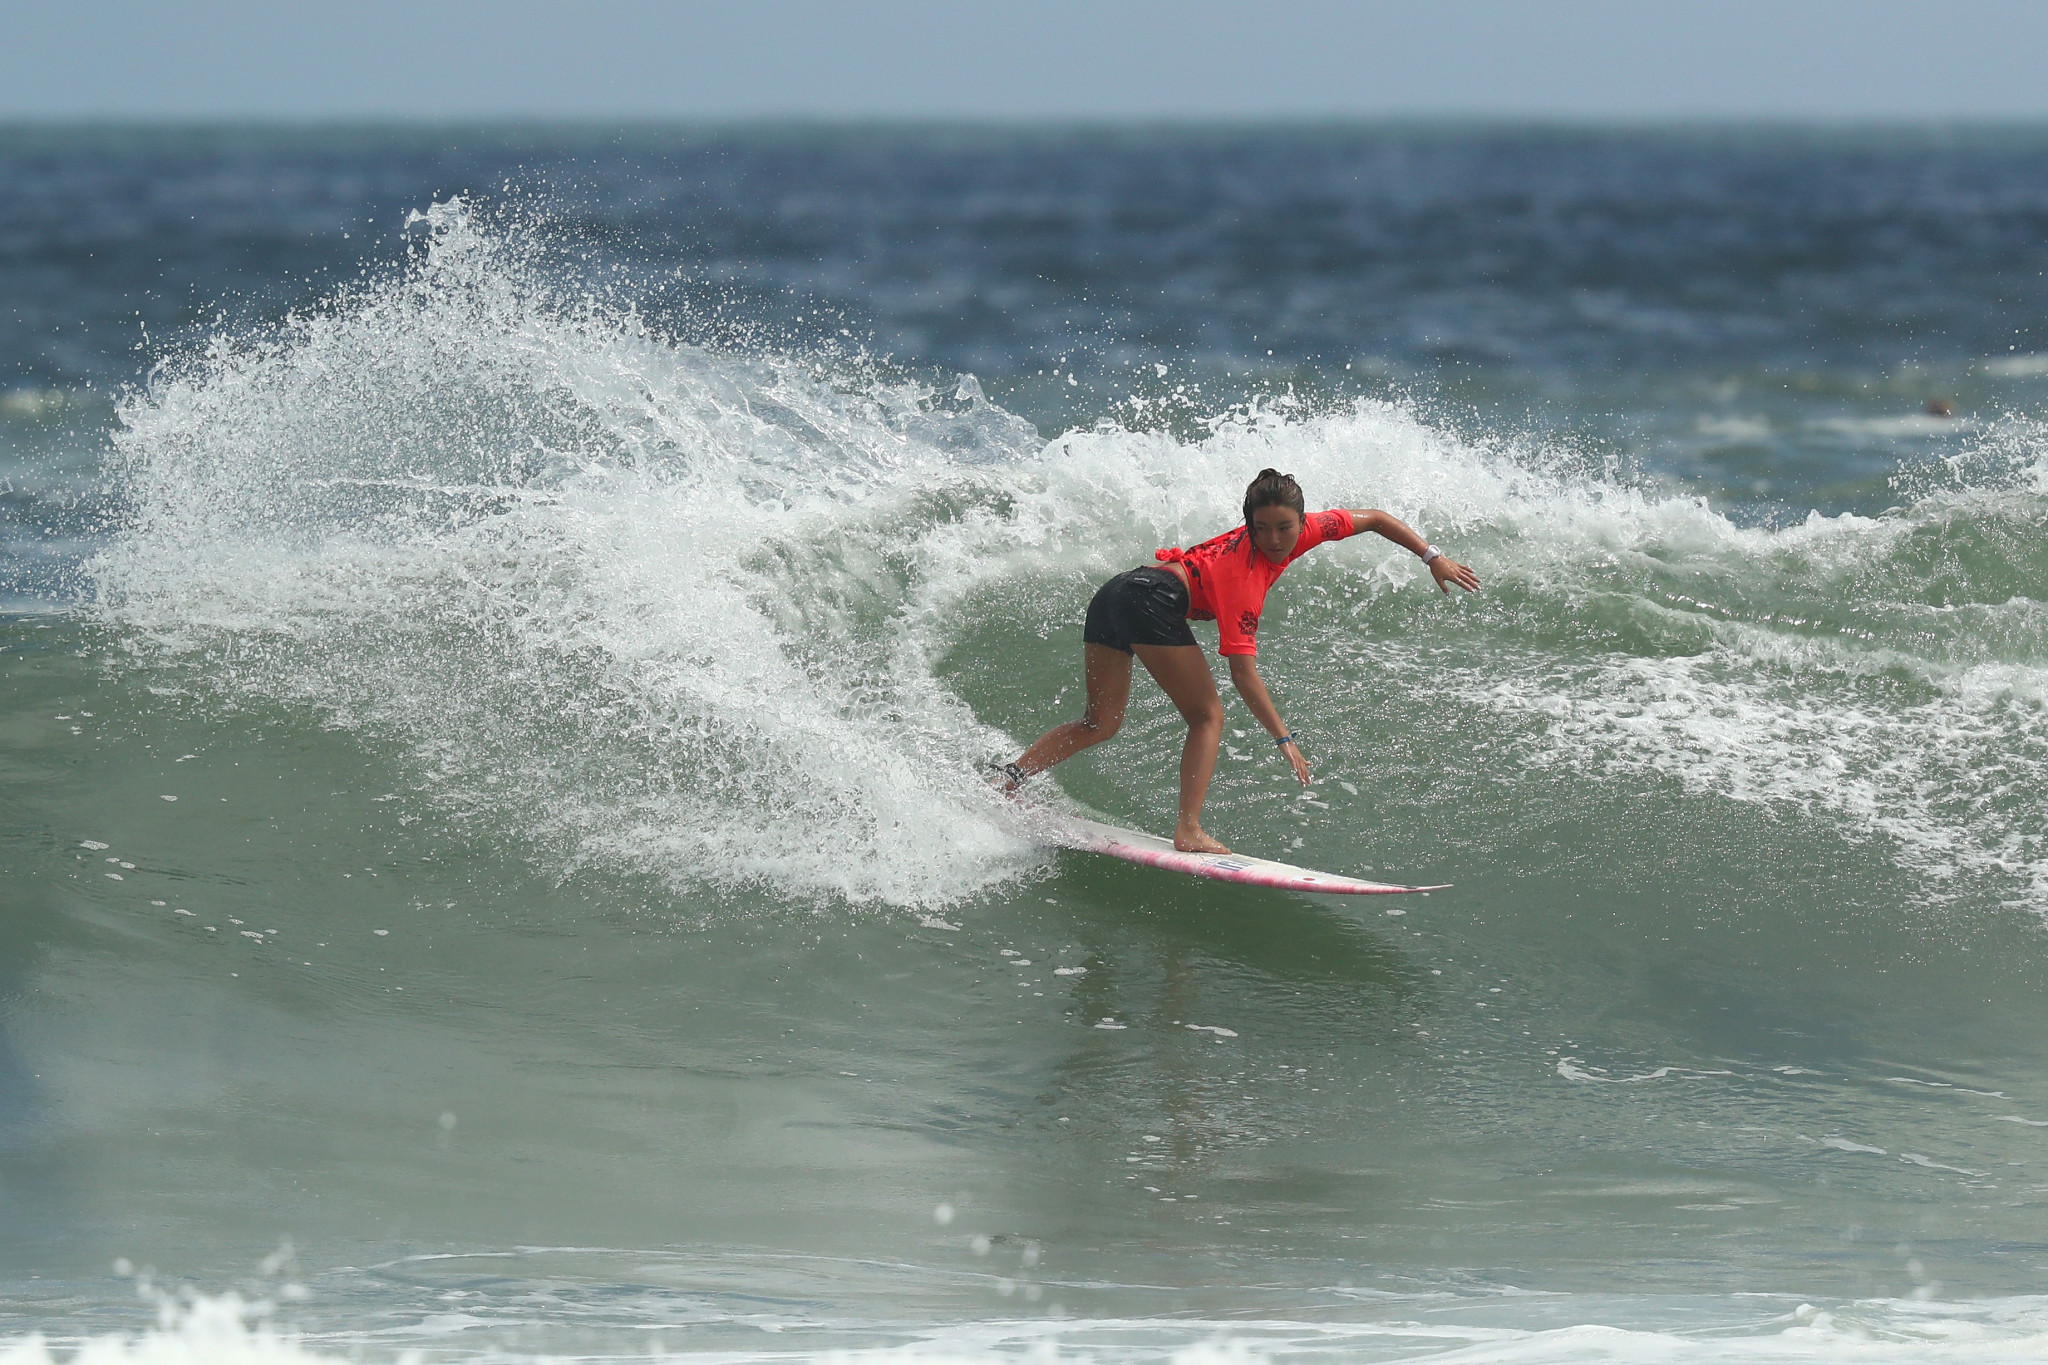 Olympic hopefuls to compete at World Junior Surfing Championships